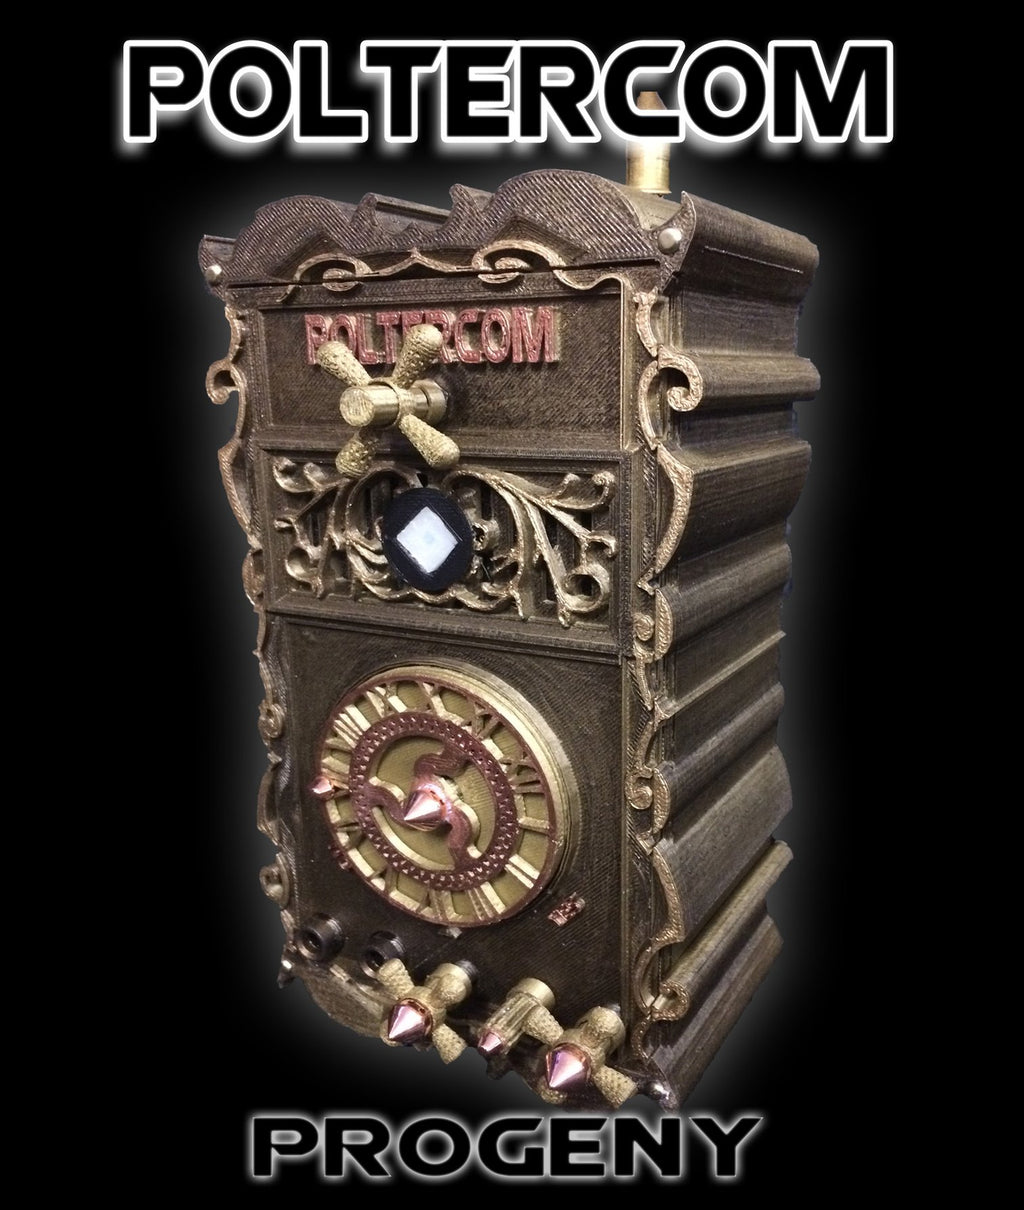 Poltercom Progeny -  Intelligent Instrumental Transcommunication Spirit/Ghost Box